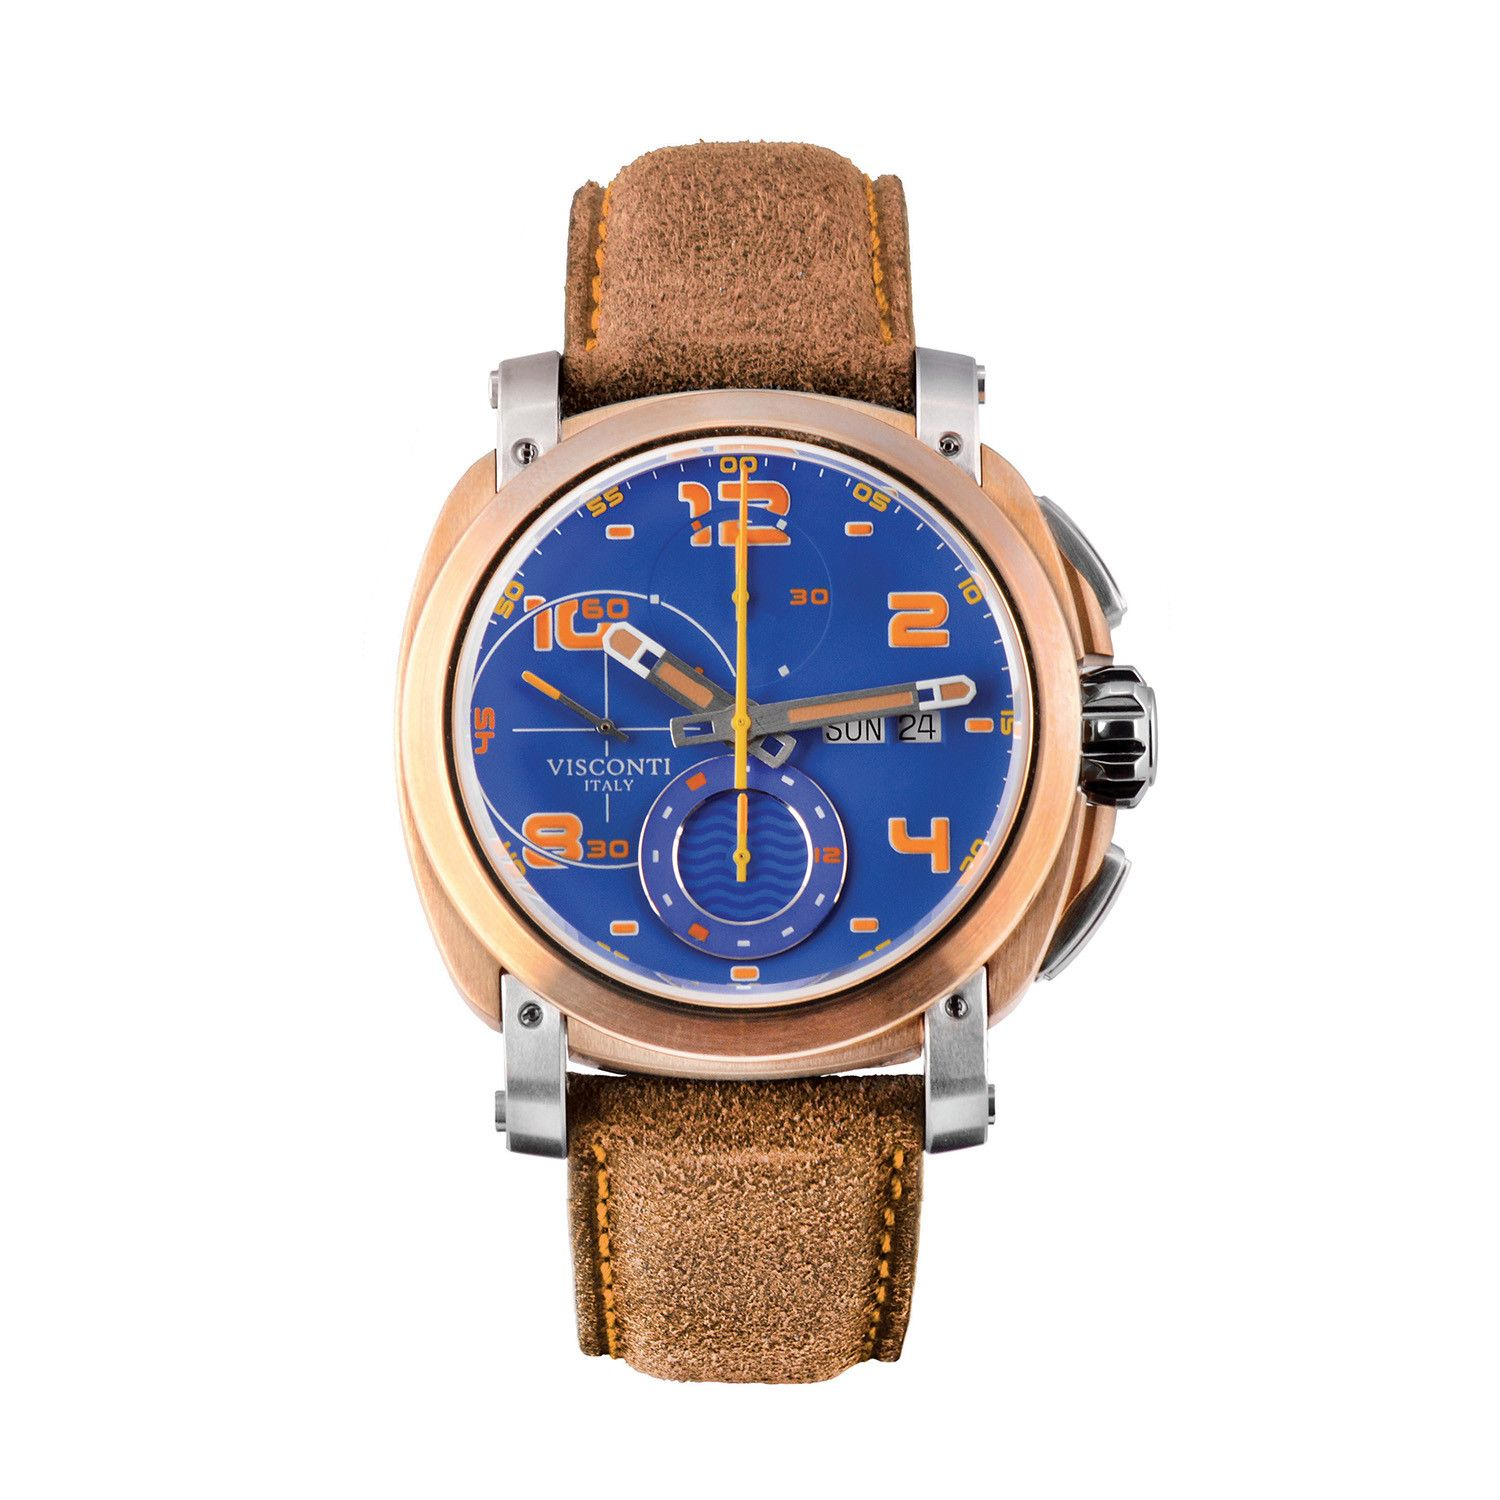 Visconti Isla Majorca Chronograph Day Date Brown Limited Edition - Watches & Crystals